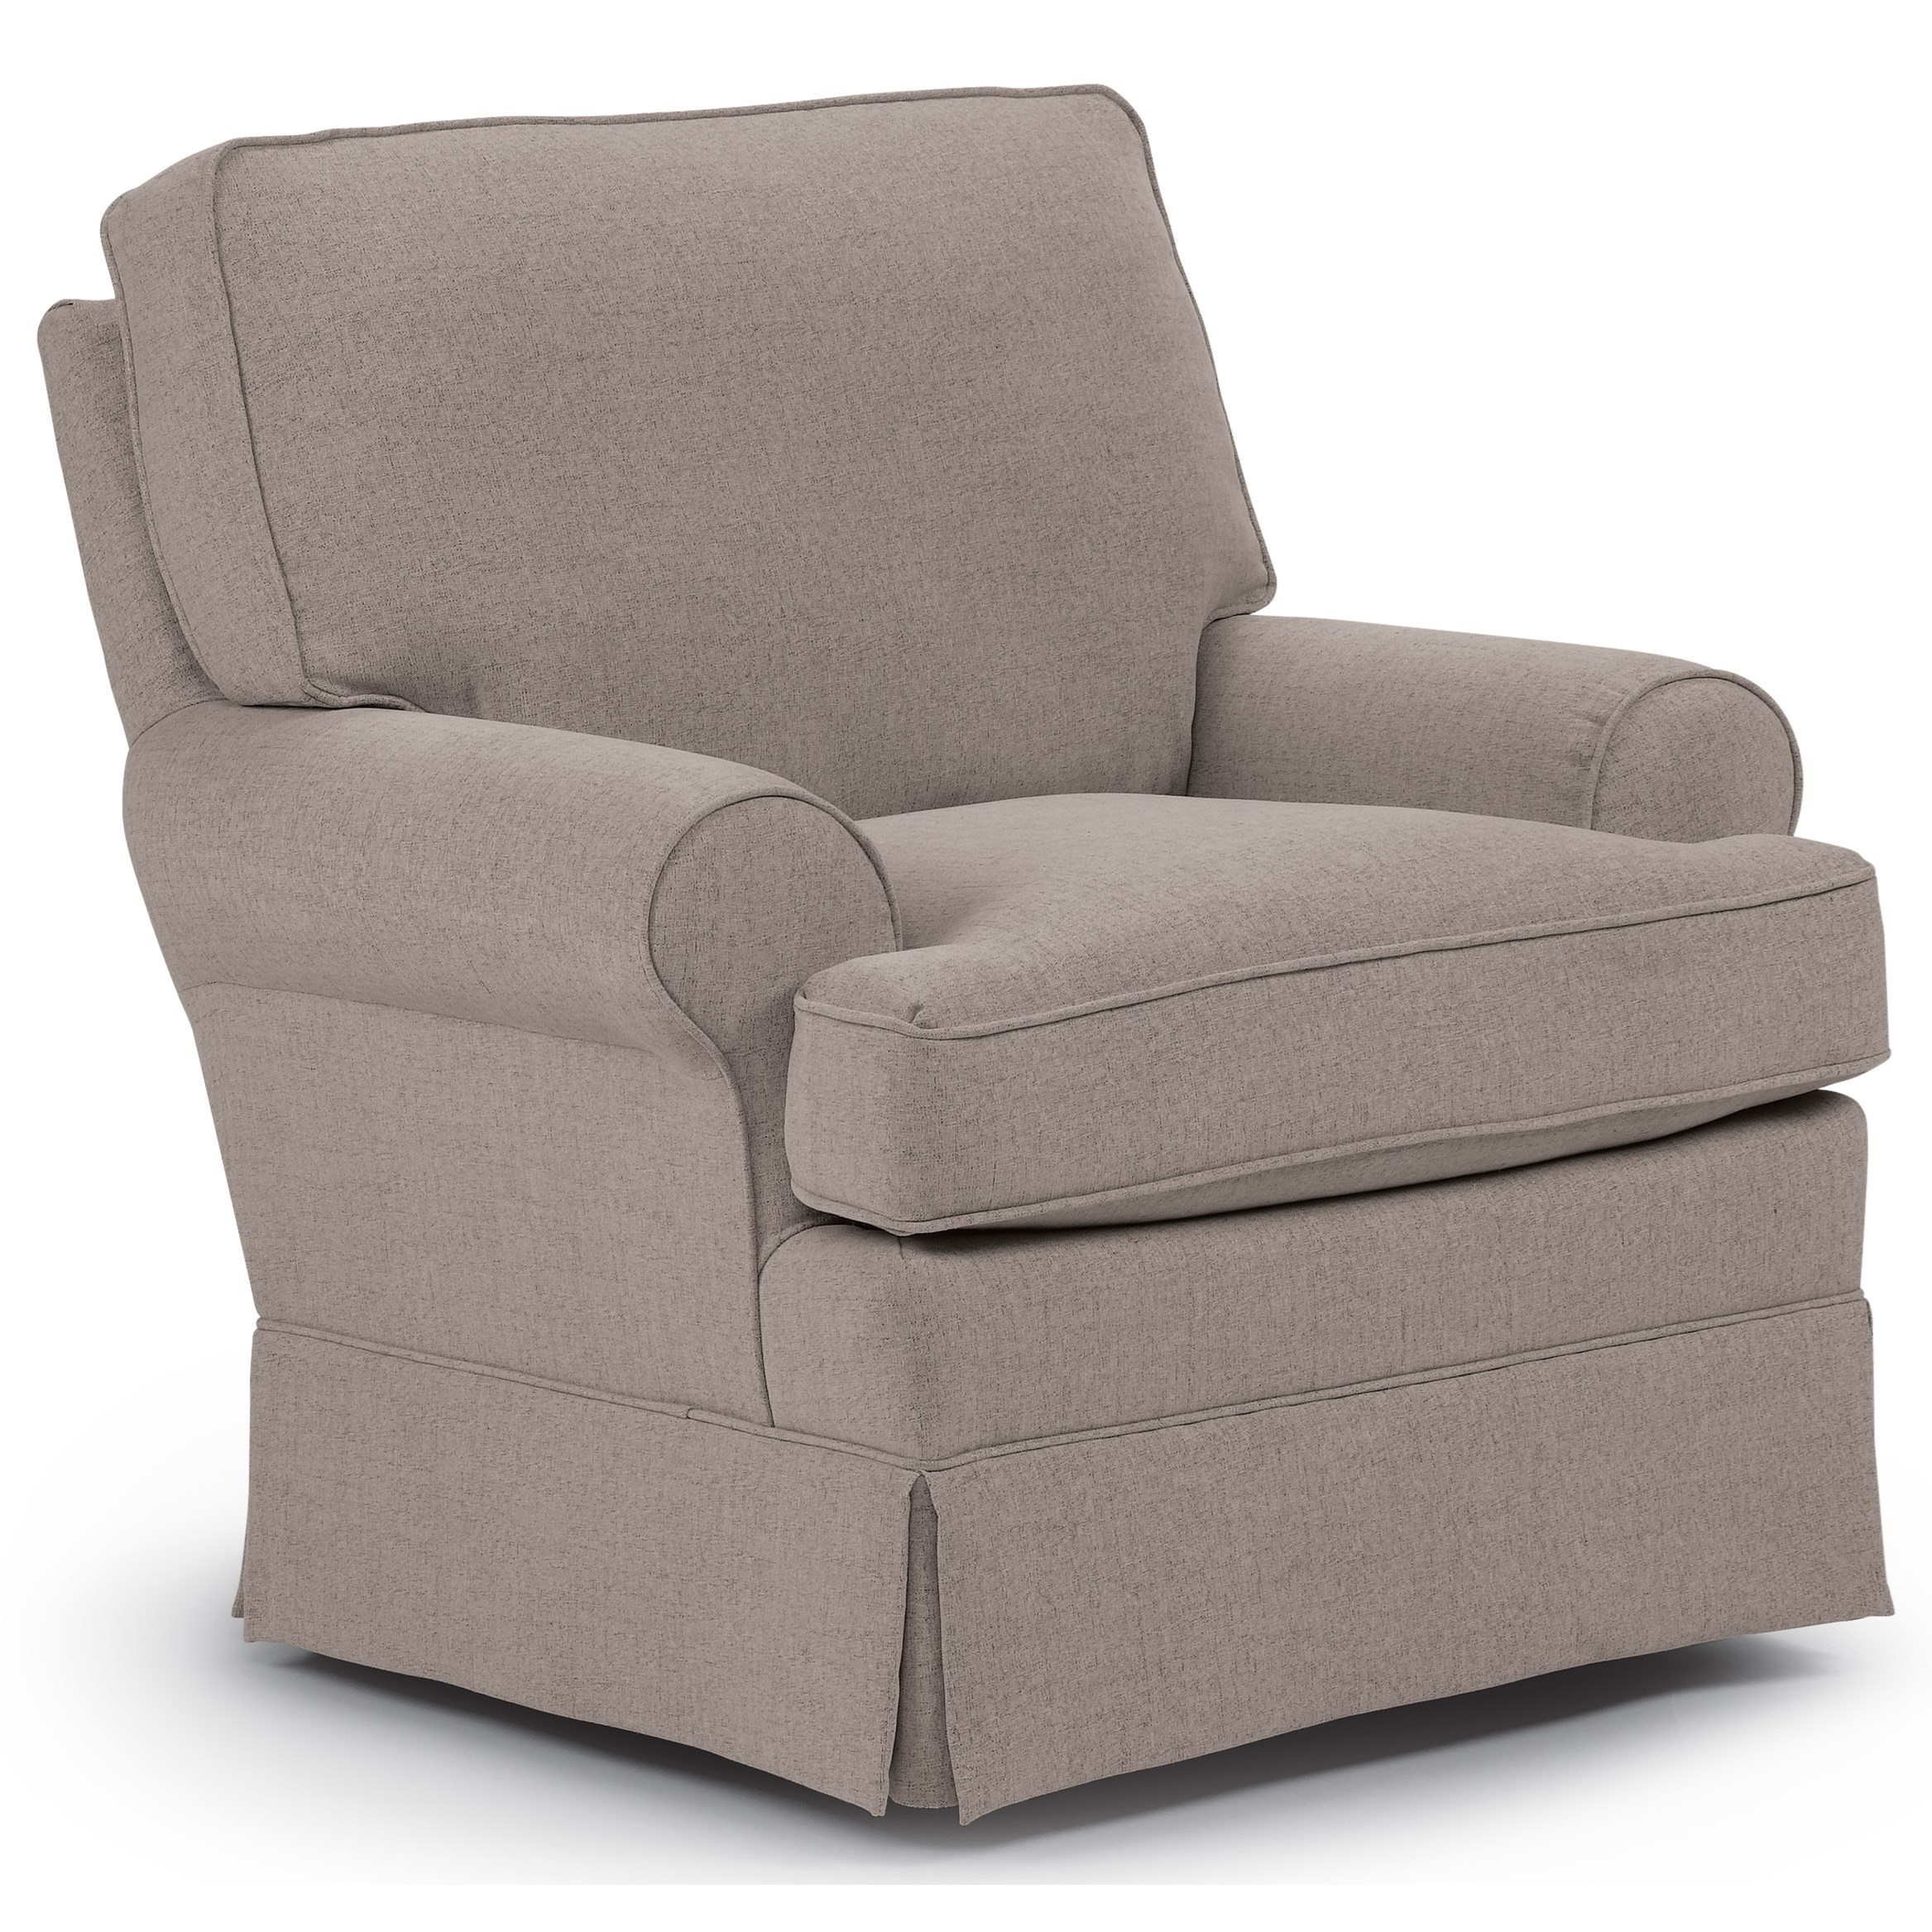 Exceptionnel Best Home Furnishings Swivel Glide Chairs Quinn Swivel Glider Chair With  Welt Cord Trim